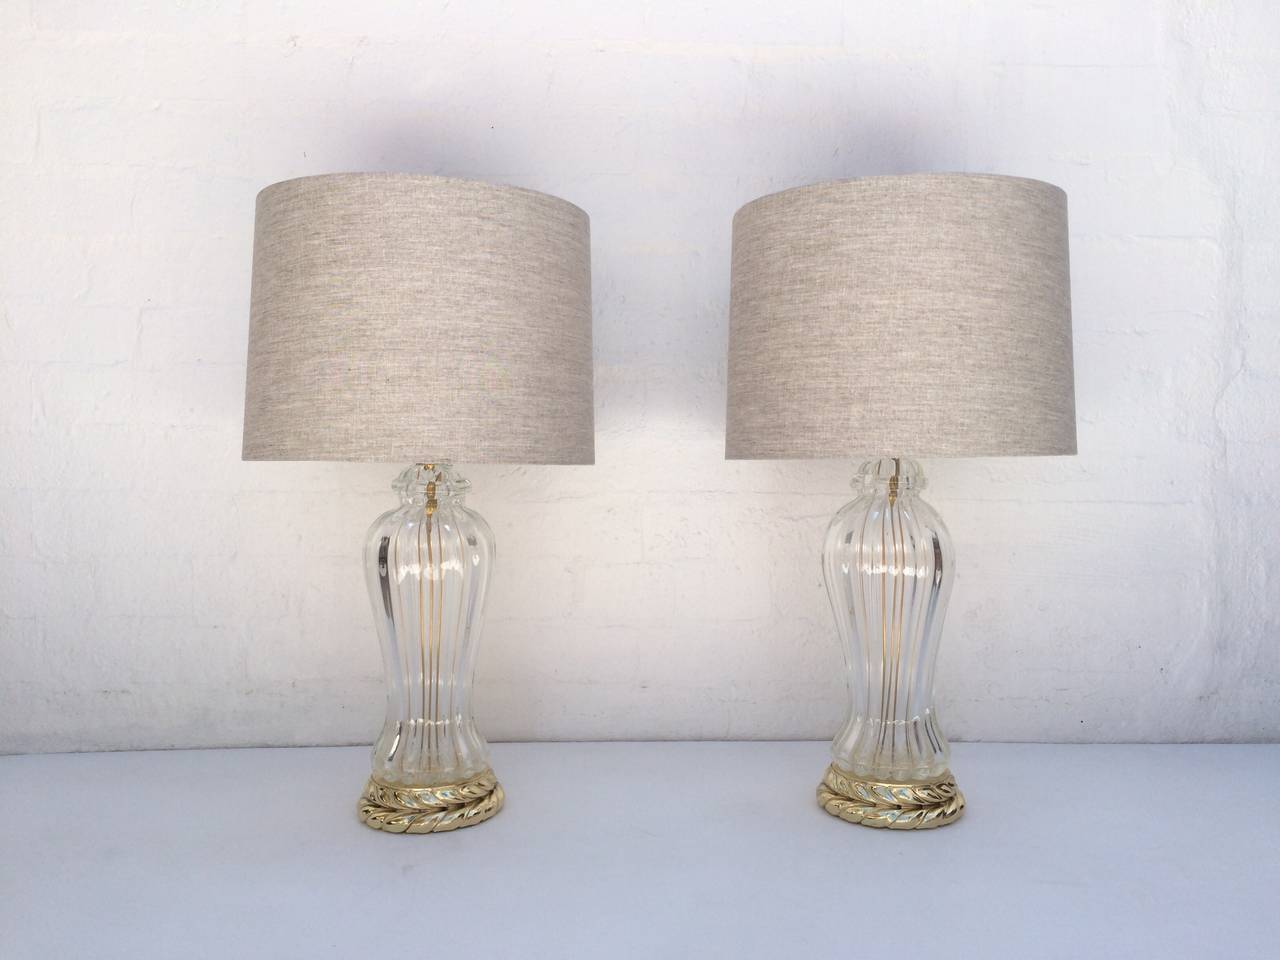 Pair of Murano Glass Table Lamps Made by Marbro Lamp Company For Sale 1